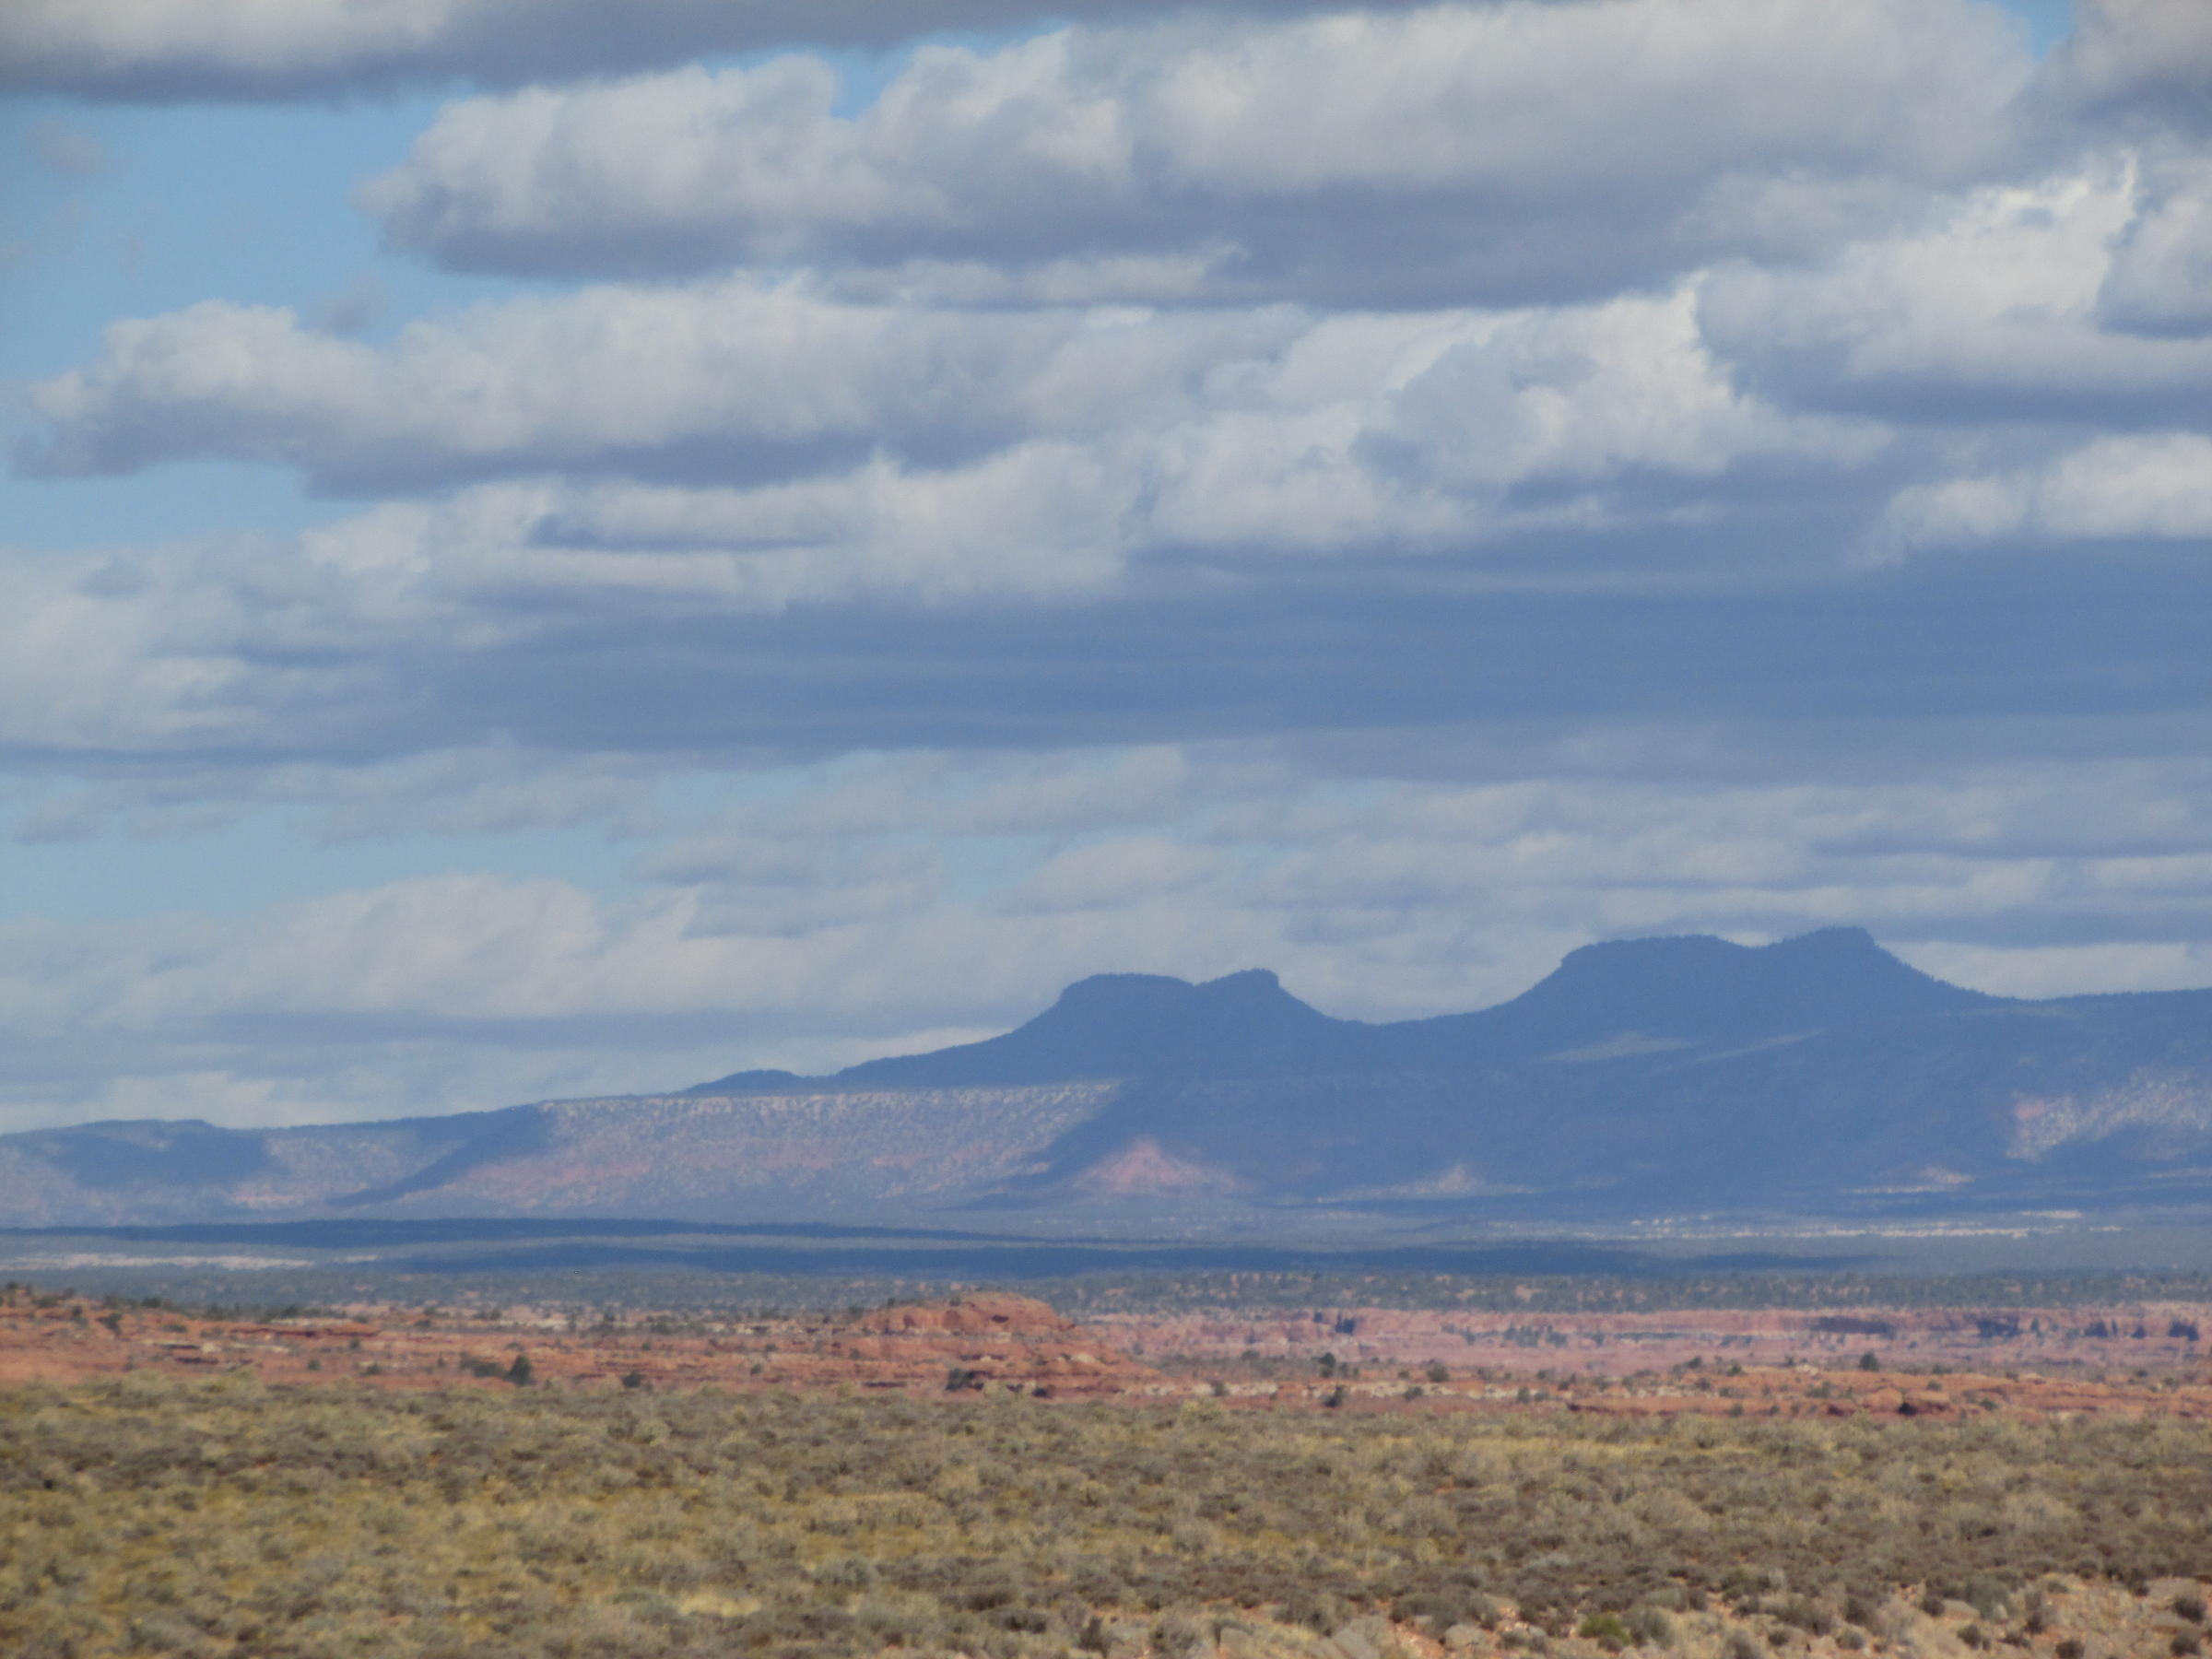 Emails Show Oil Was Key in Bears Ears Monument Decision